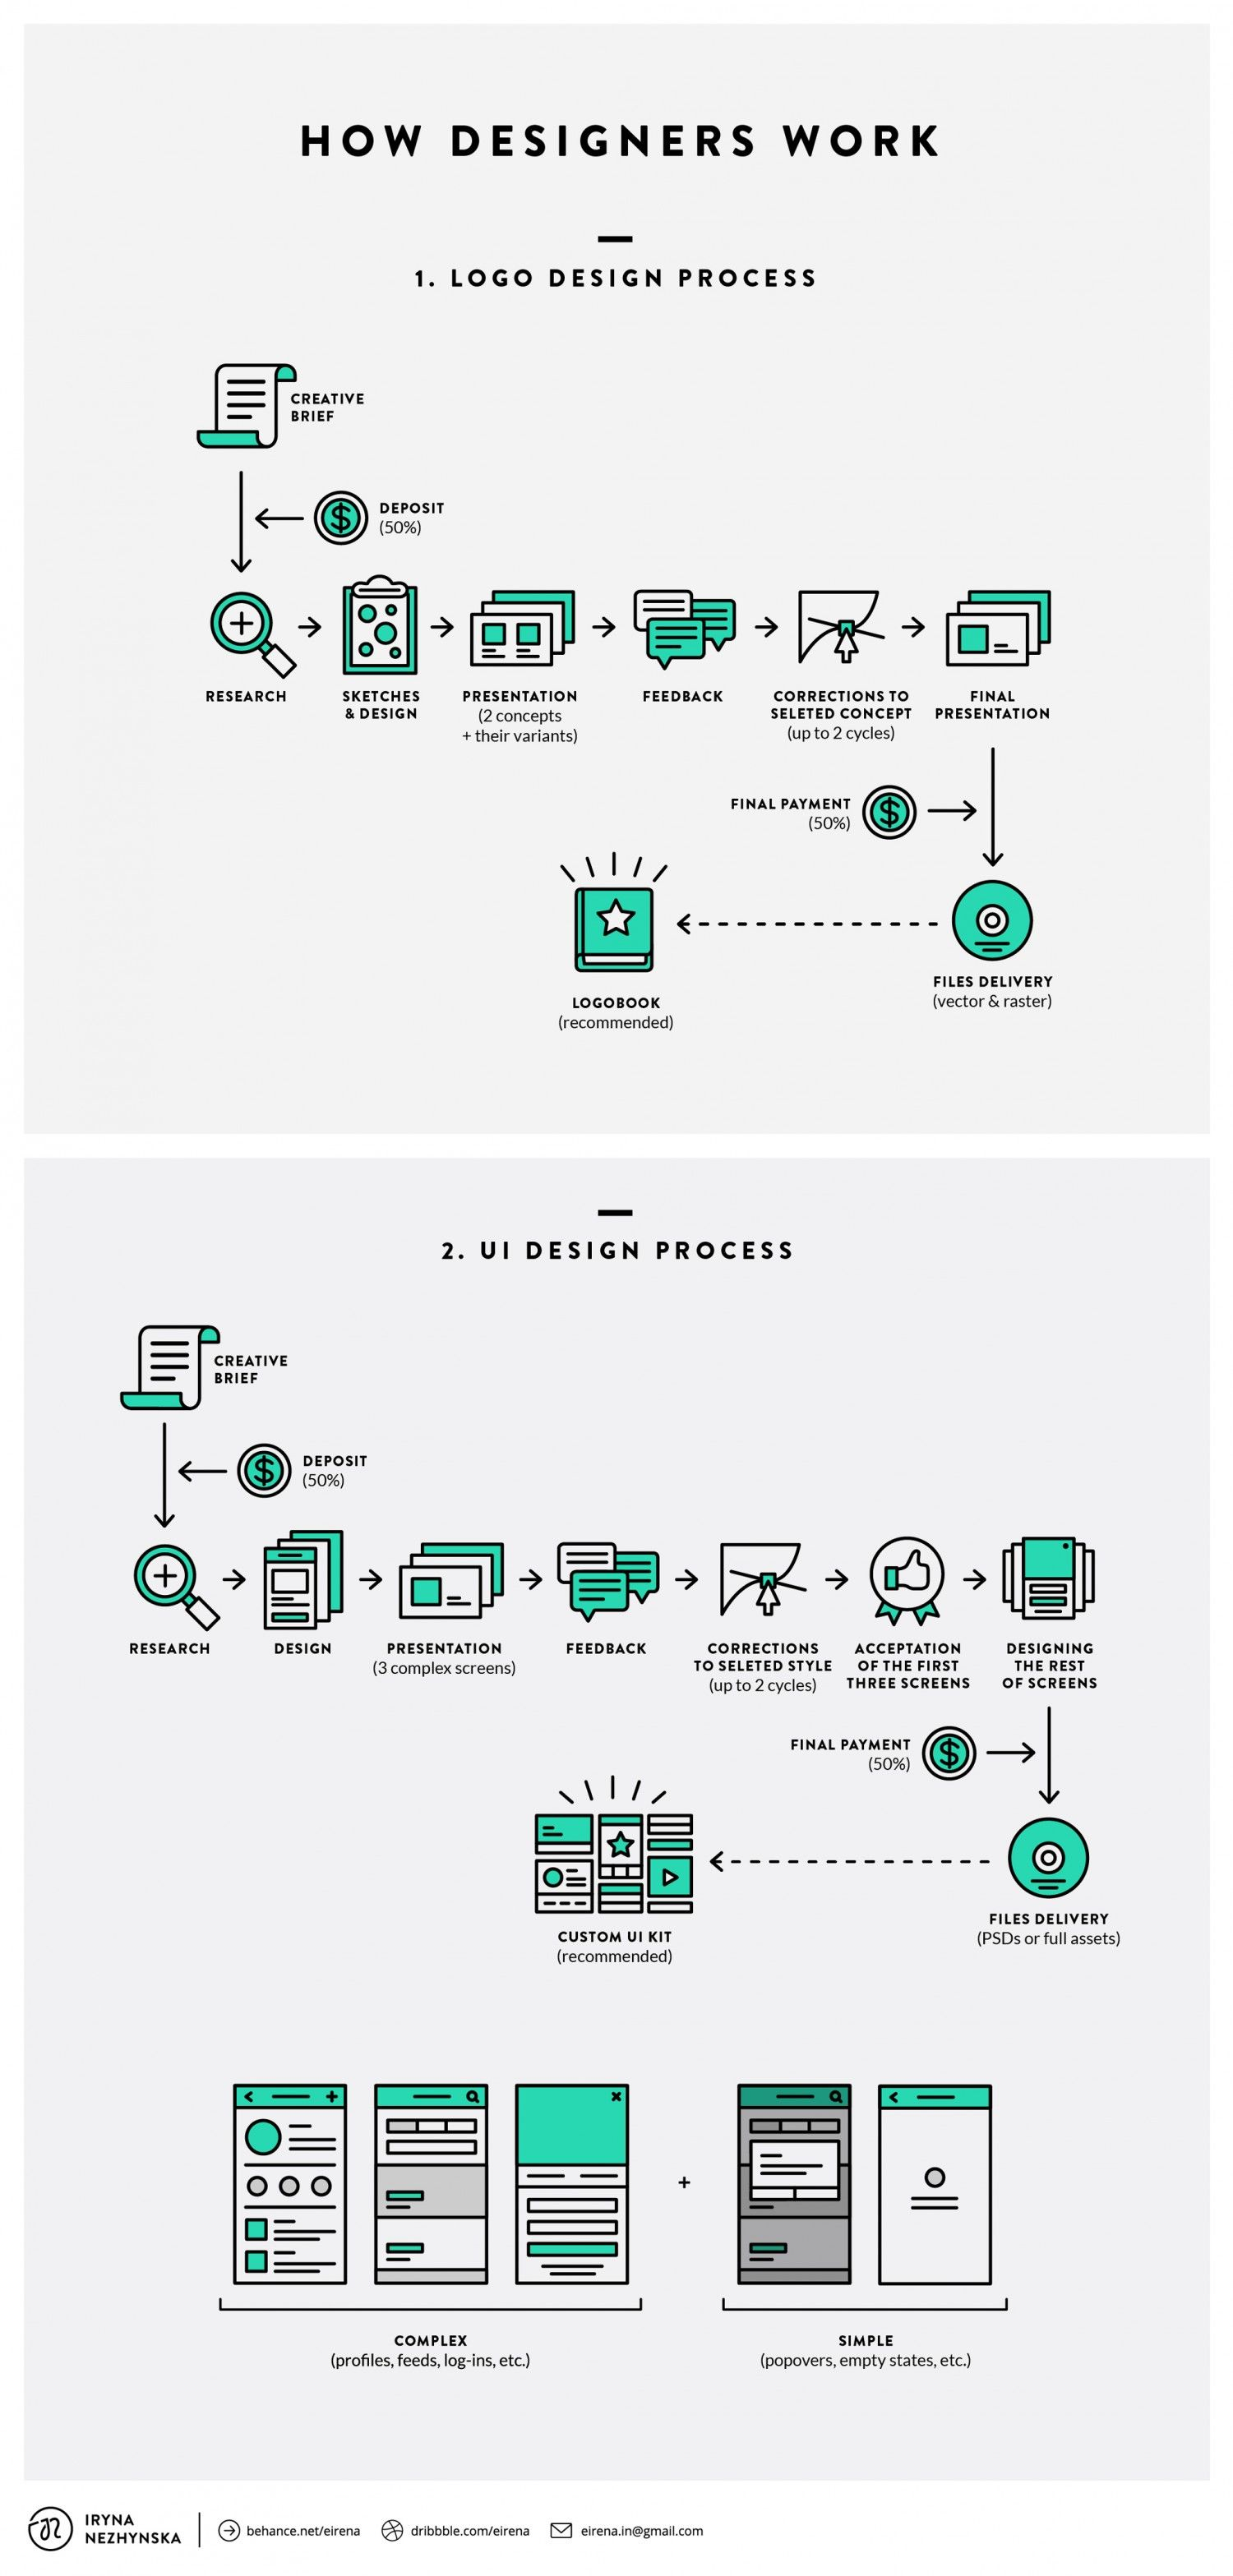 small resolution of flowchart how designers work designtaxi com icon design design taxi web